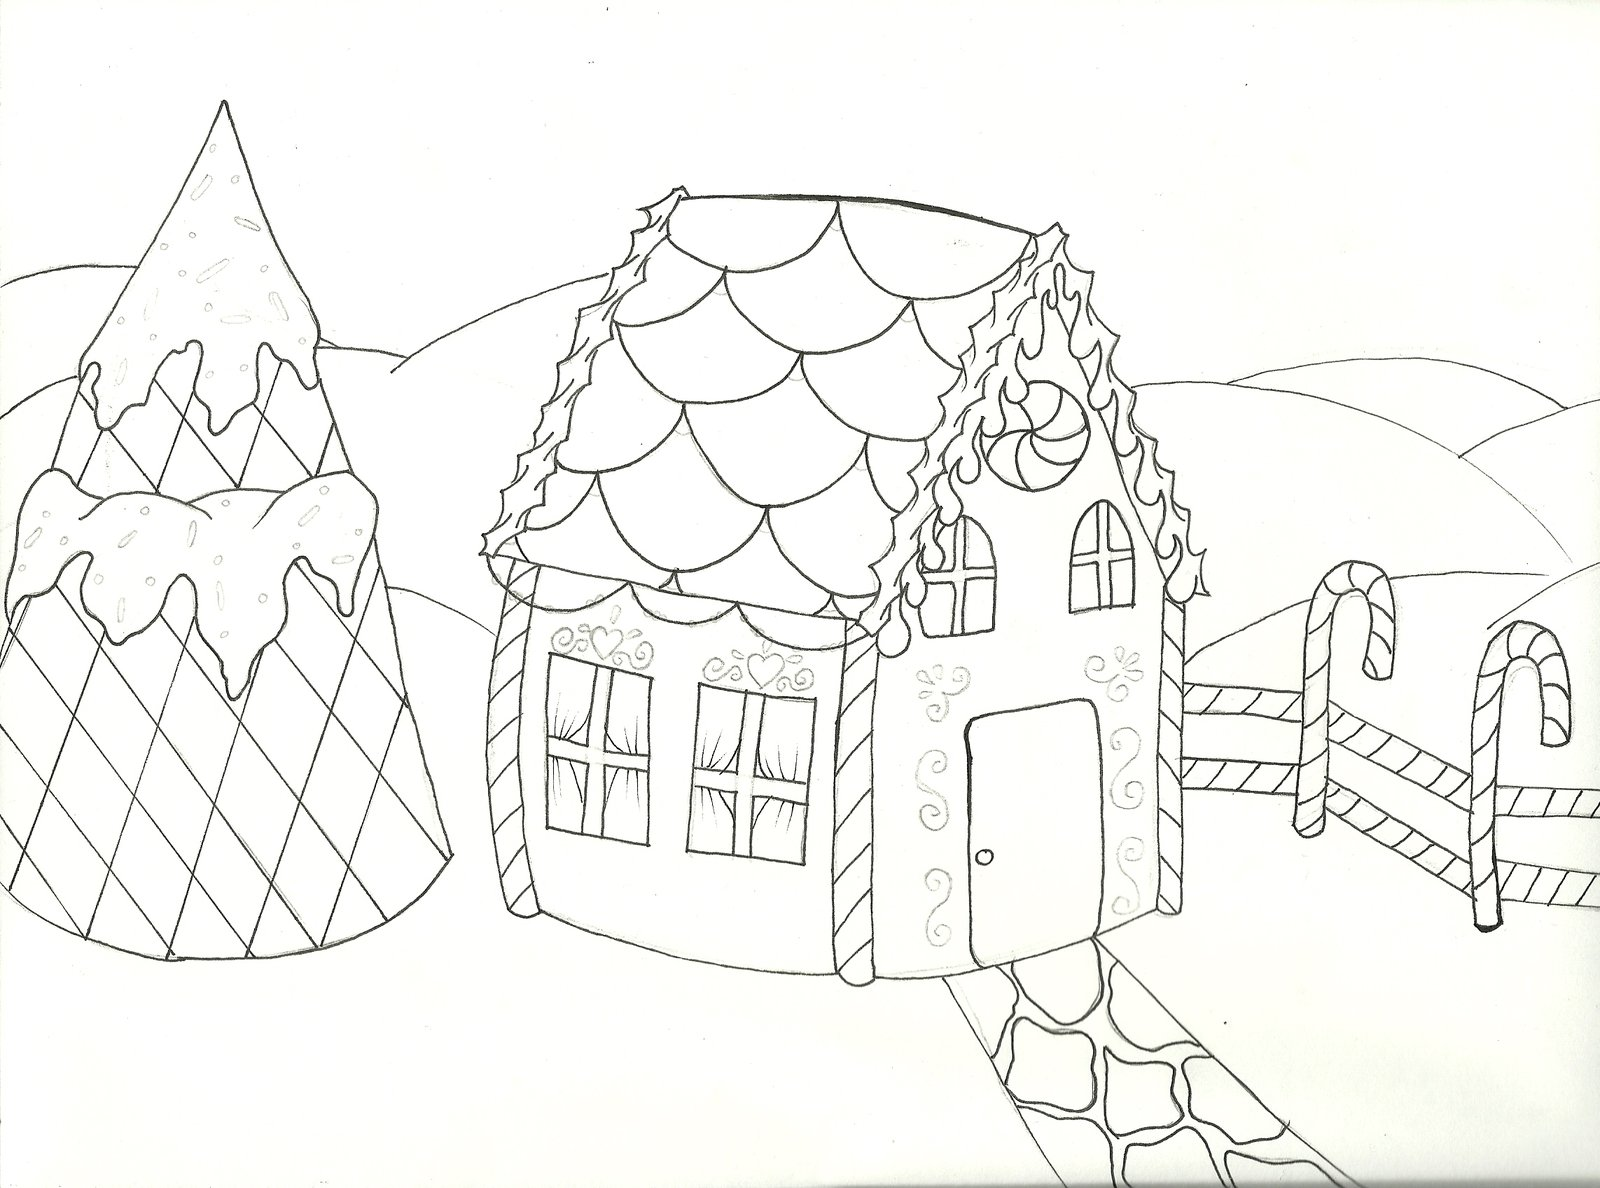 Printable coloring pages gingerbread house - Gingerbread House Coloring Pages Printable